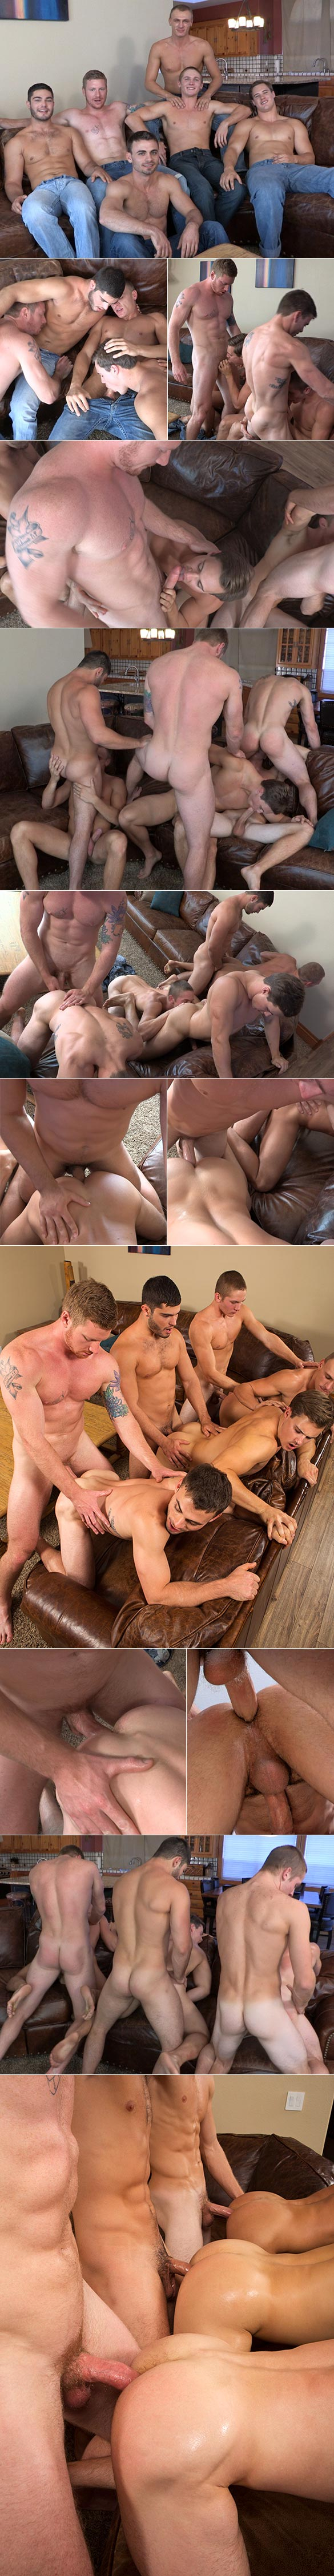 "Sean Cody: David, Tanner, Bryce, Andy, Coleman and Noel in ""Mountain Getaway: Day 4"""